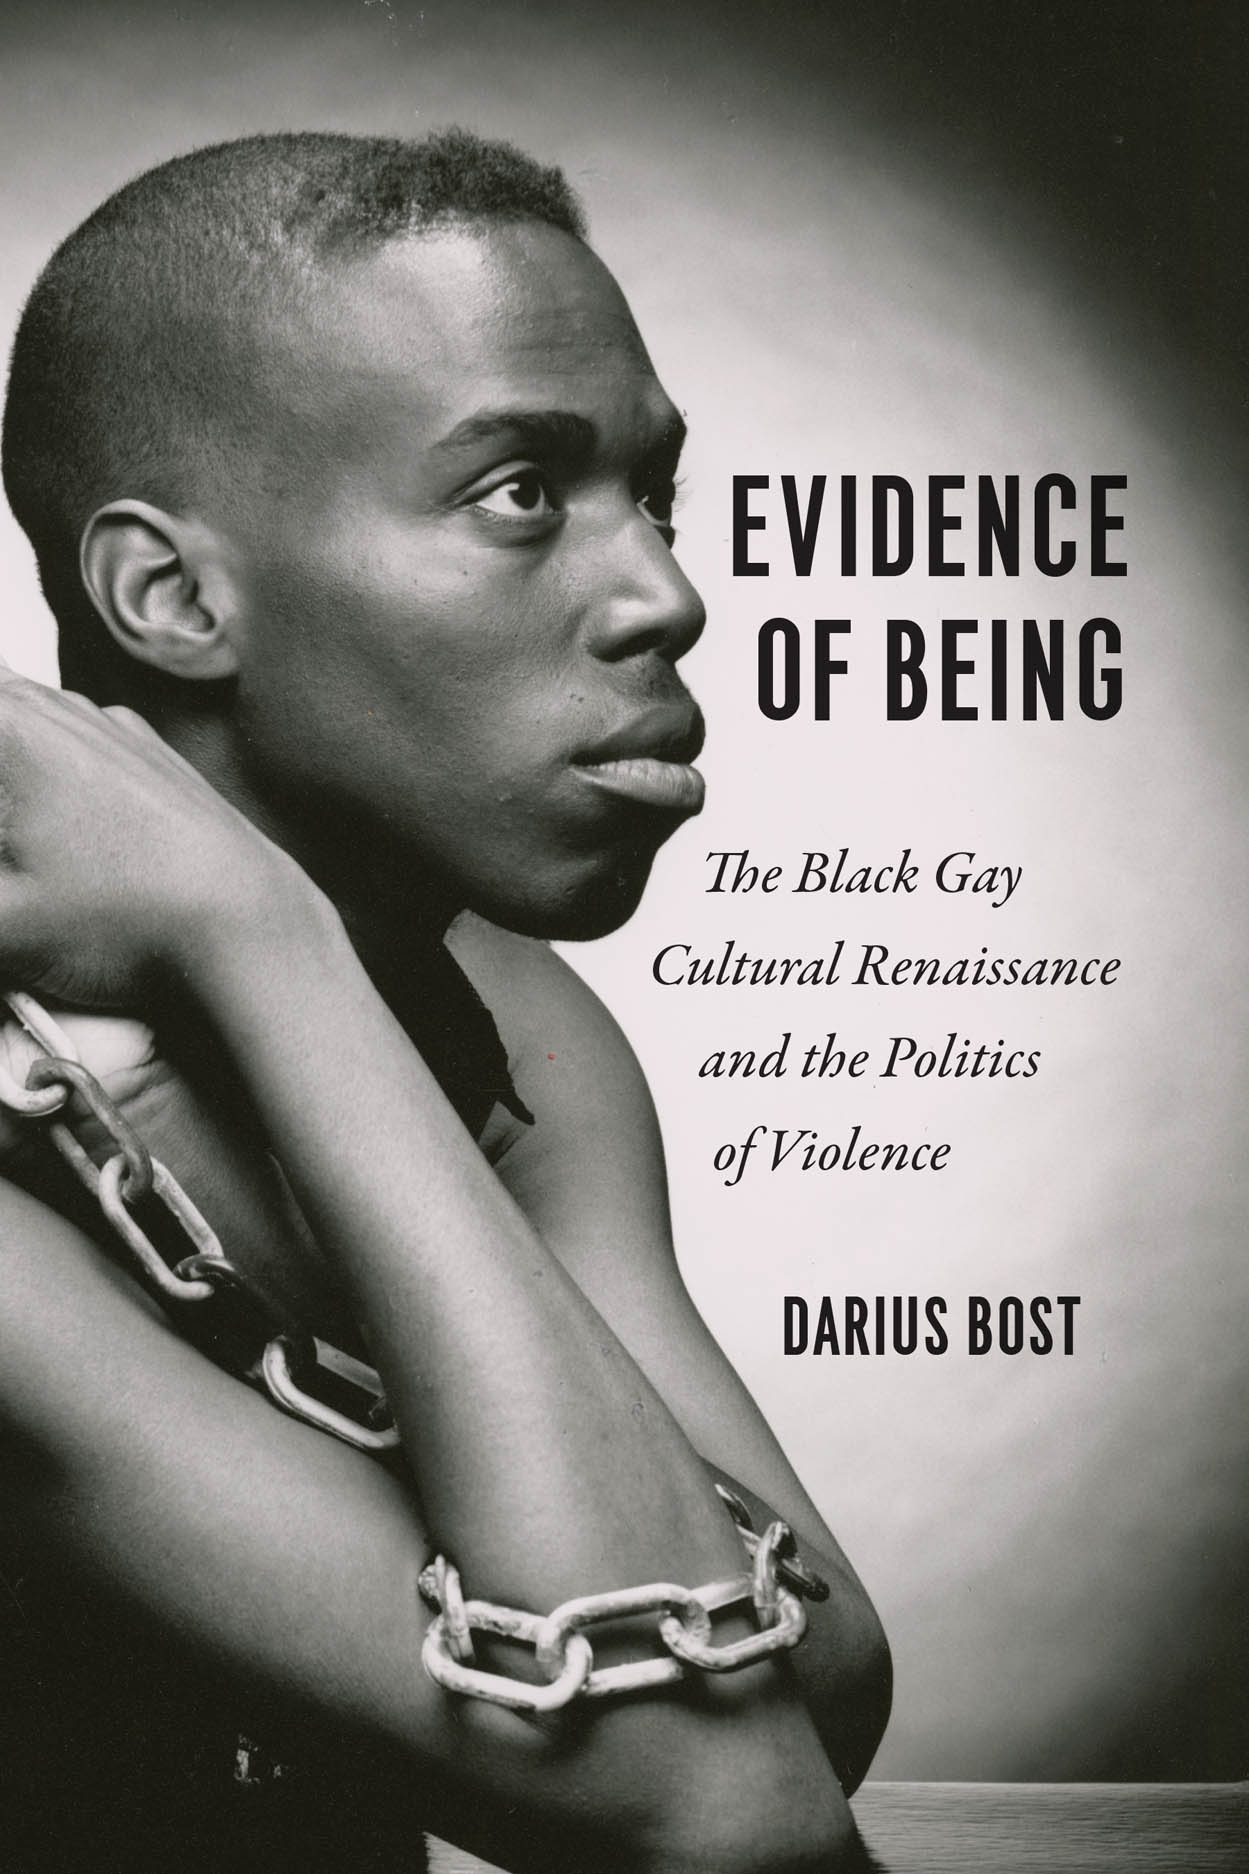 Evidence of Being: The Black Gay Cultural Renaissance and the Politics of Violence